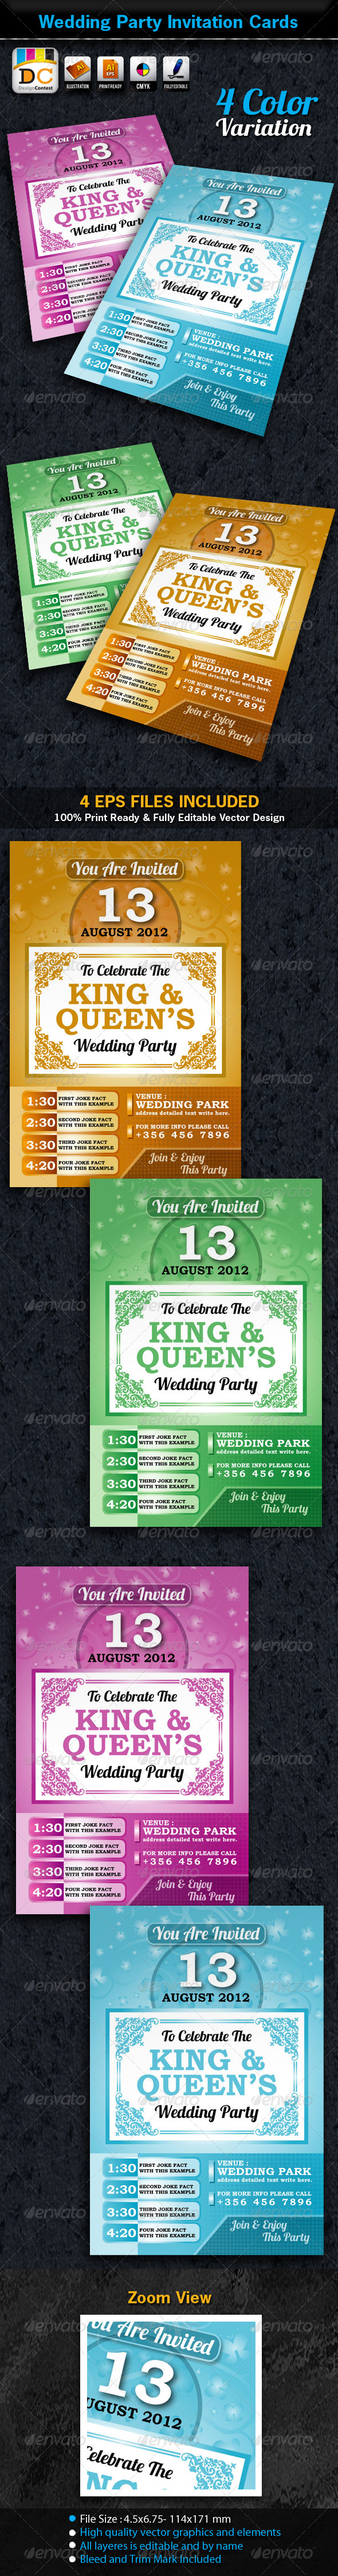 Wedding Party Invitation Card Sets - Weddings Cards & Invites